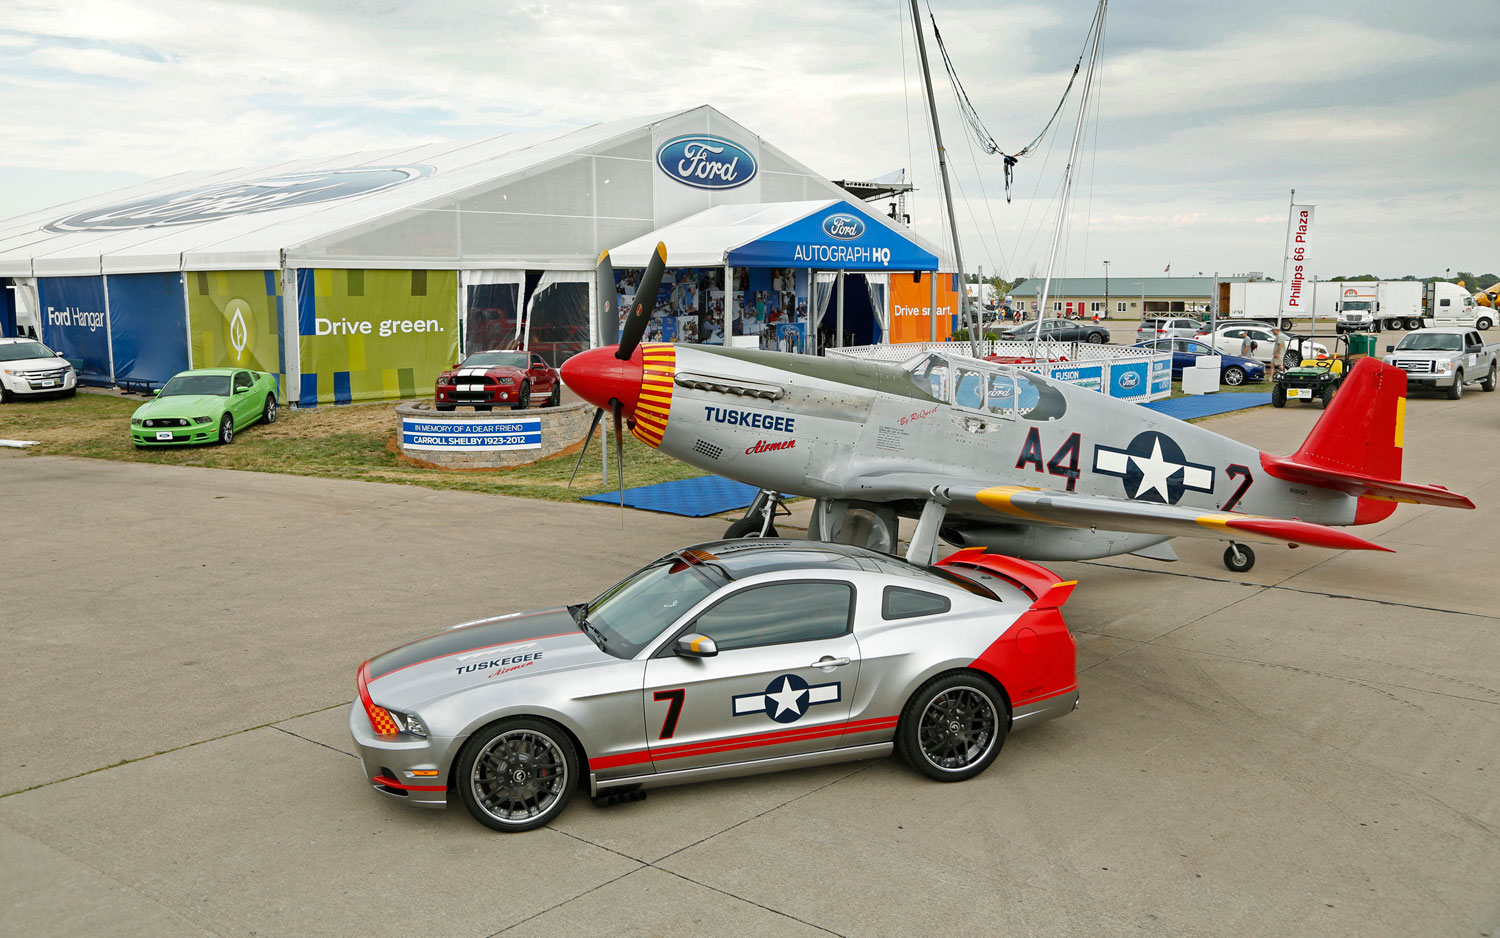 2013 Ford Mustang Boss 302 Laguna Seca Red Tails And P 51C Mustang Side Above1